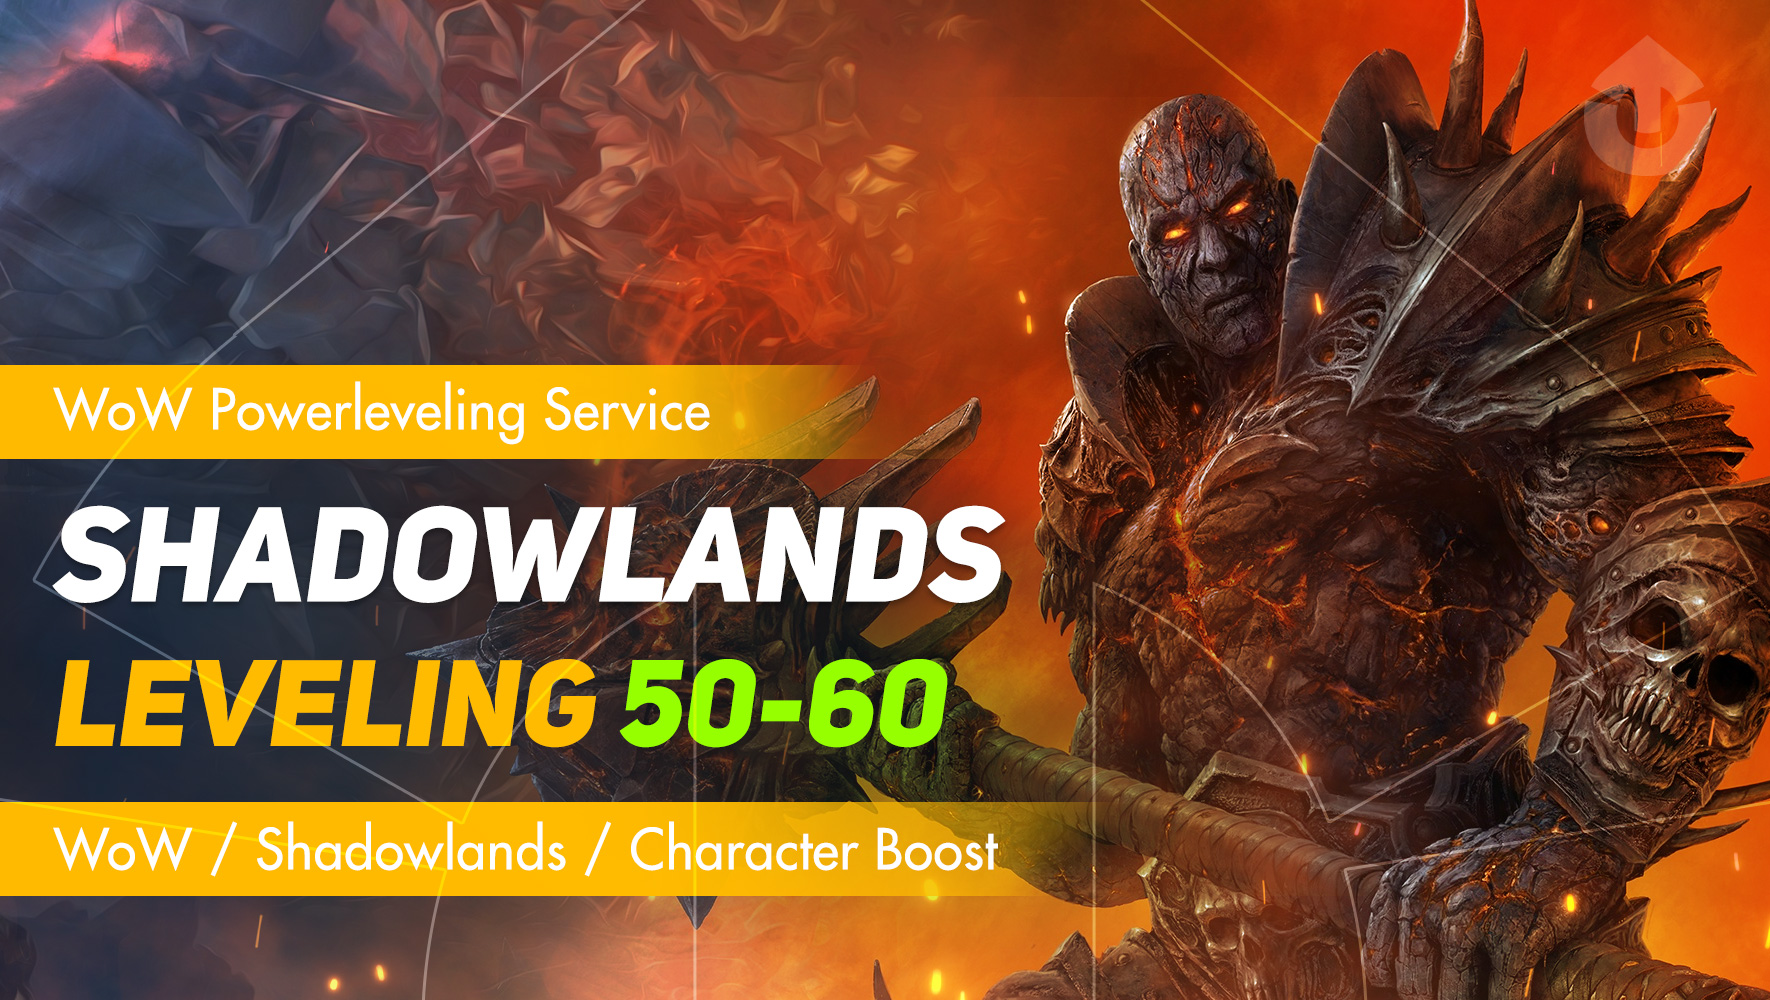 Shadowlands leveling from 50 lvl to 60 lvl GBD - e2p.com